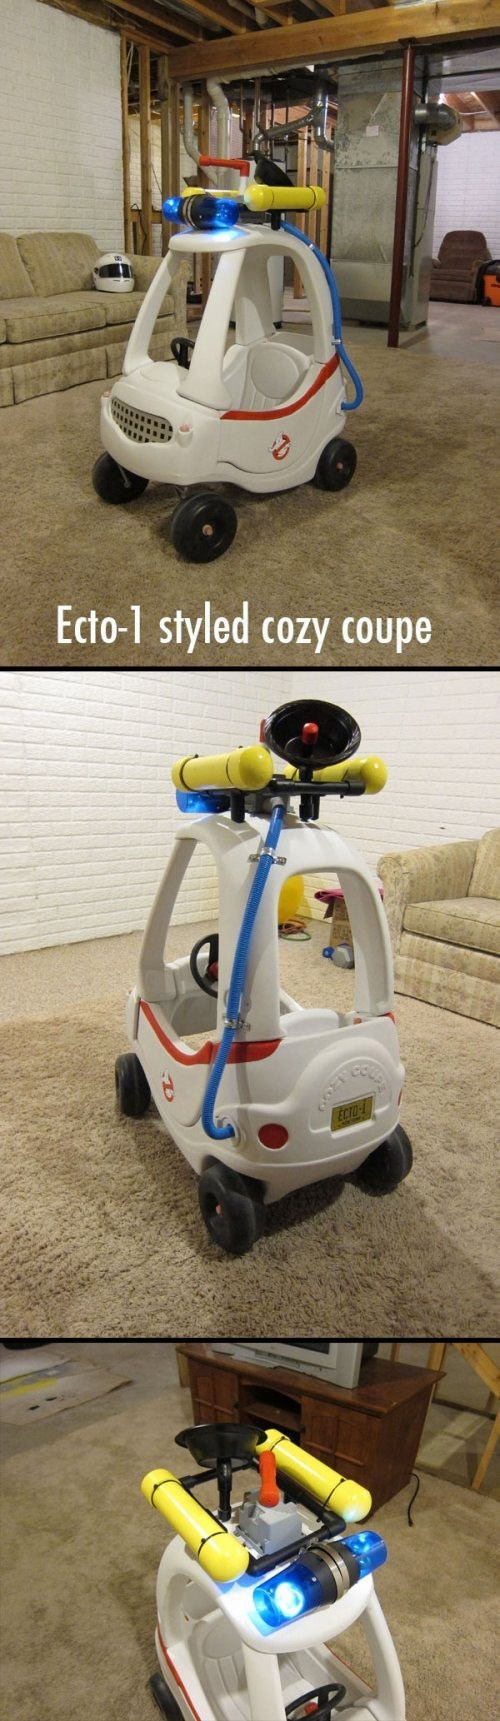 cozy coupe toys kids Ghostbusters parenting ecto-1 - 8070301696